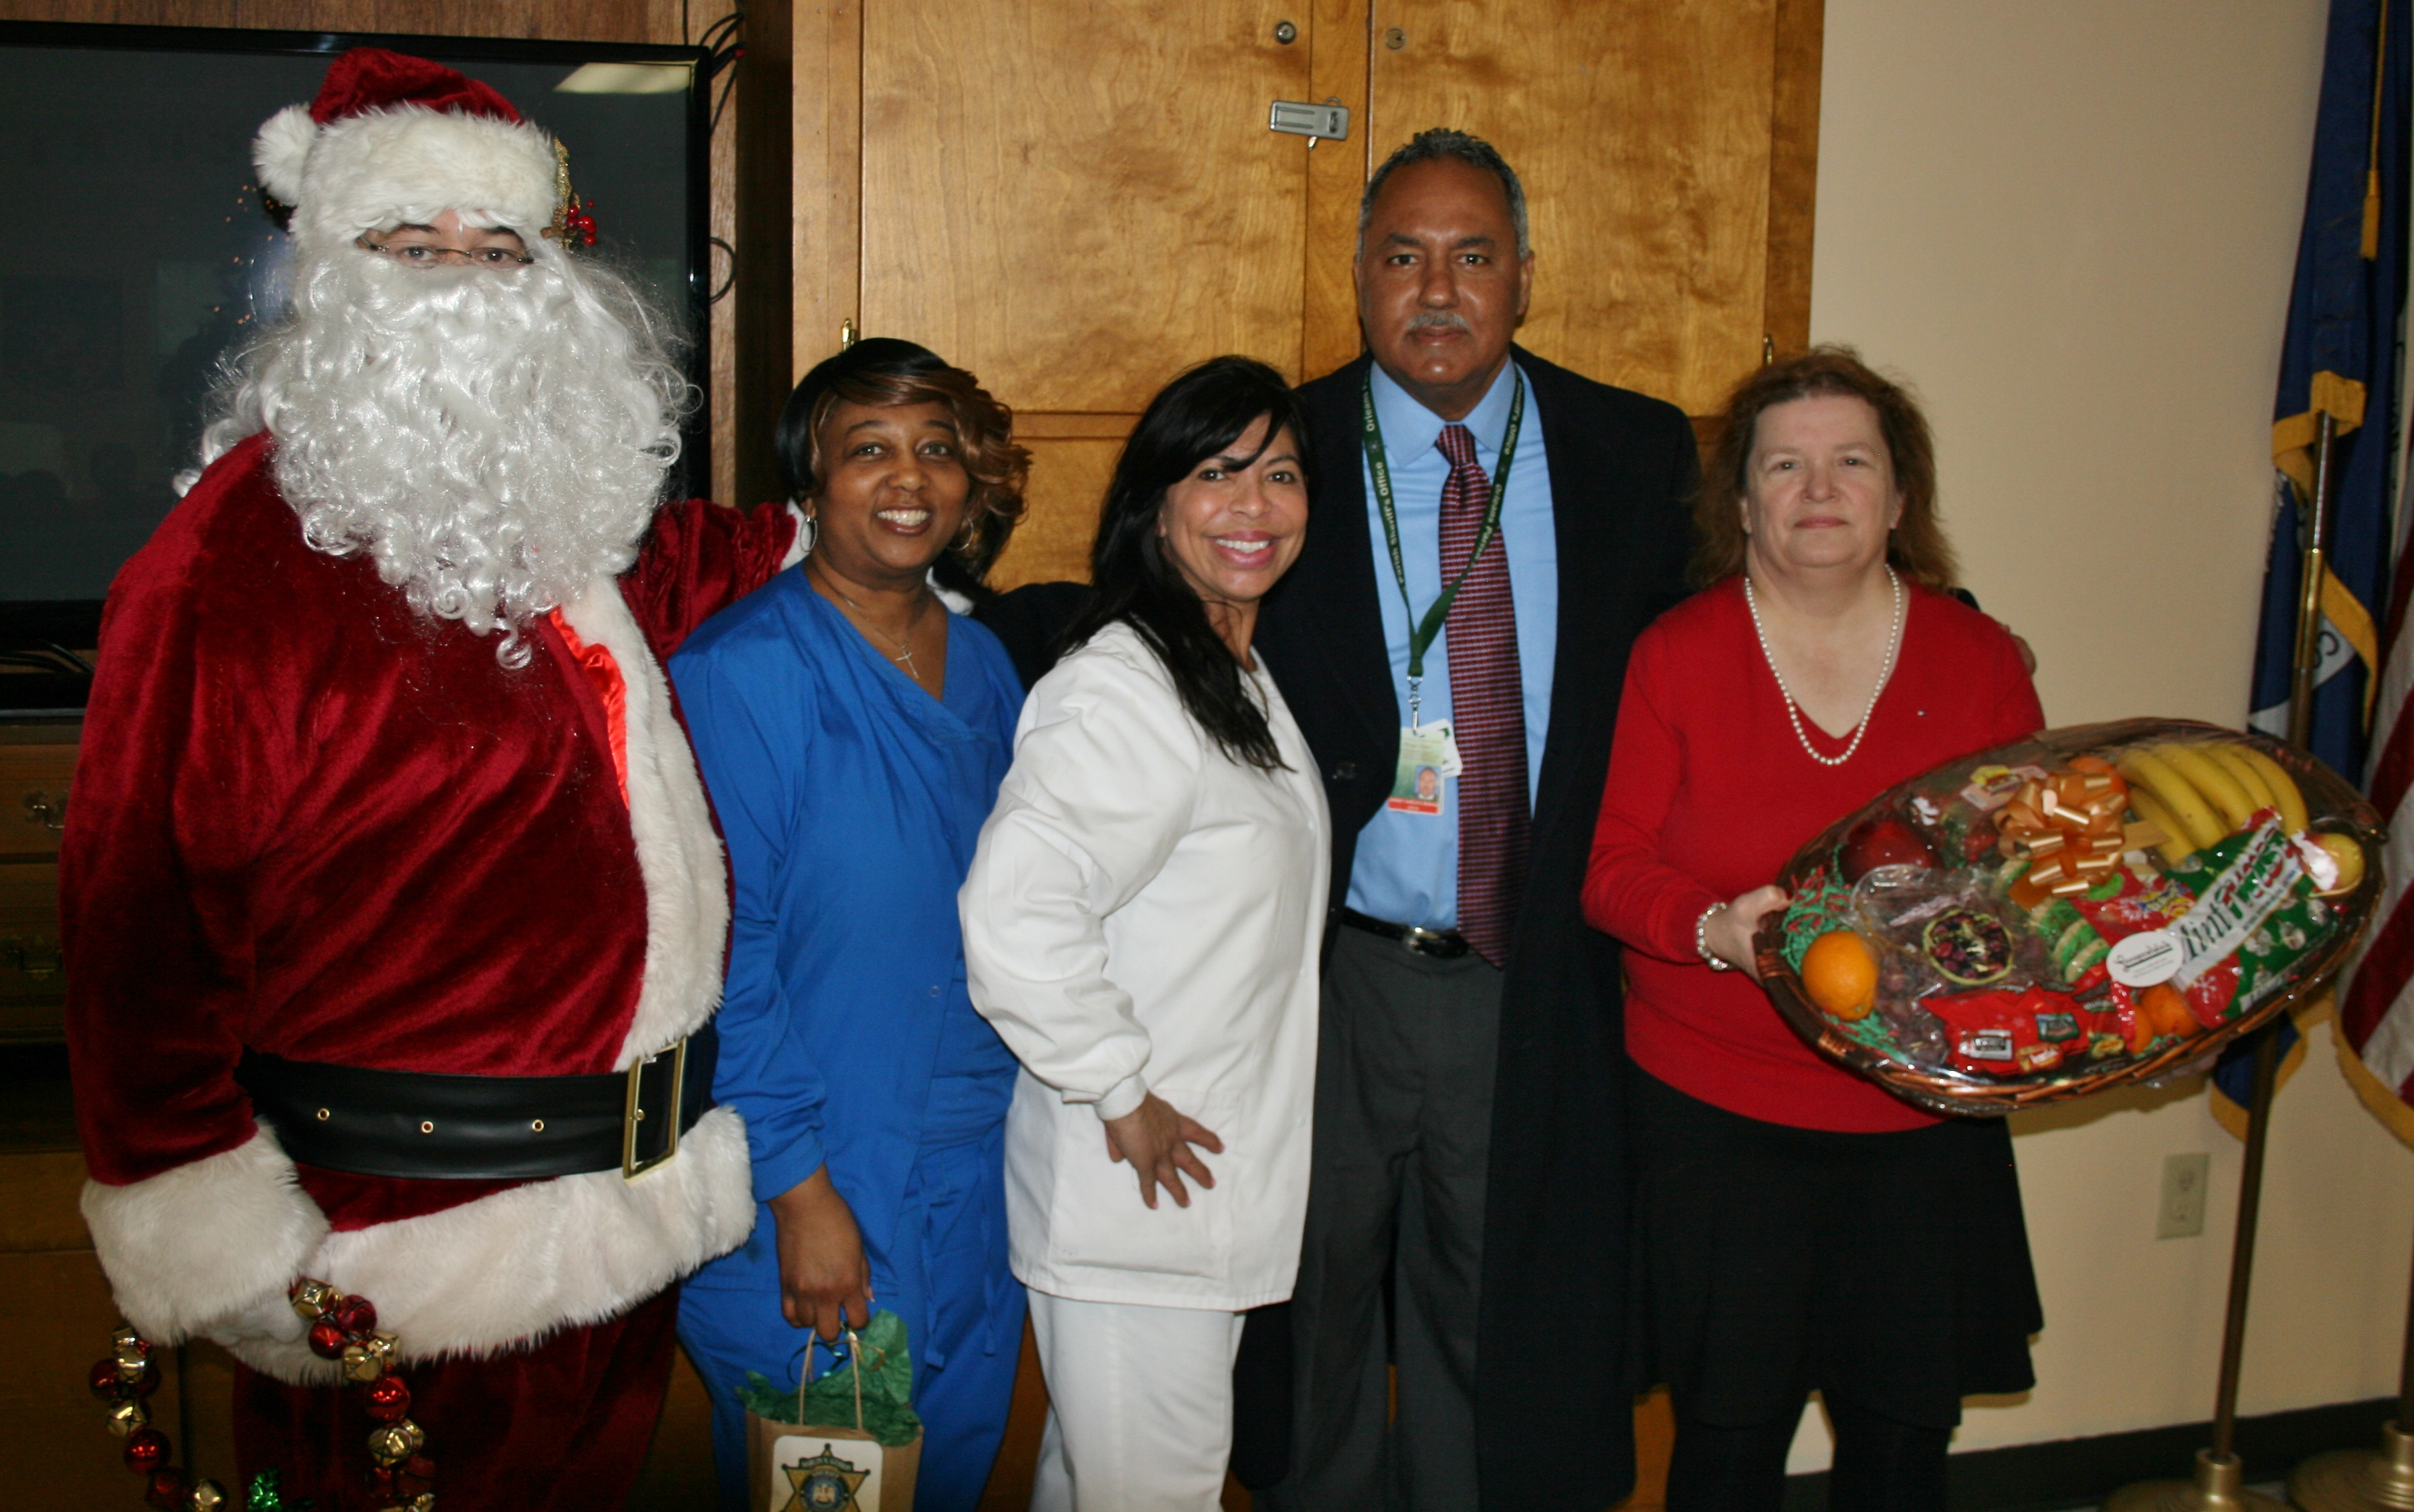 Sheriff Gusman and Santa Claus bring gift bags and baskets to the residents and staff of the John J. Hainkel Rehabilitation Home.